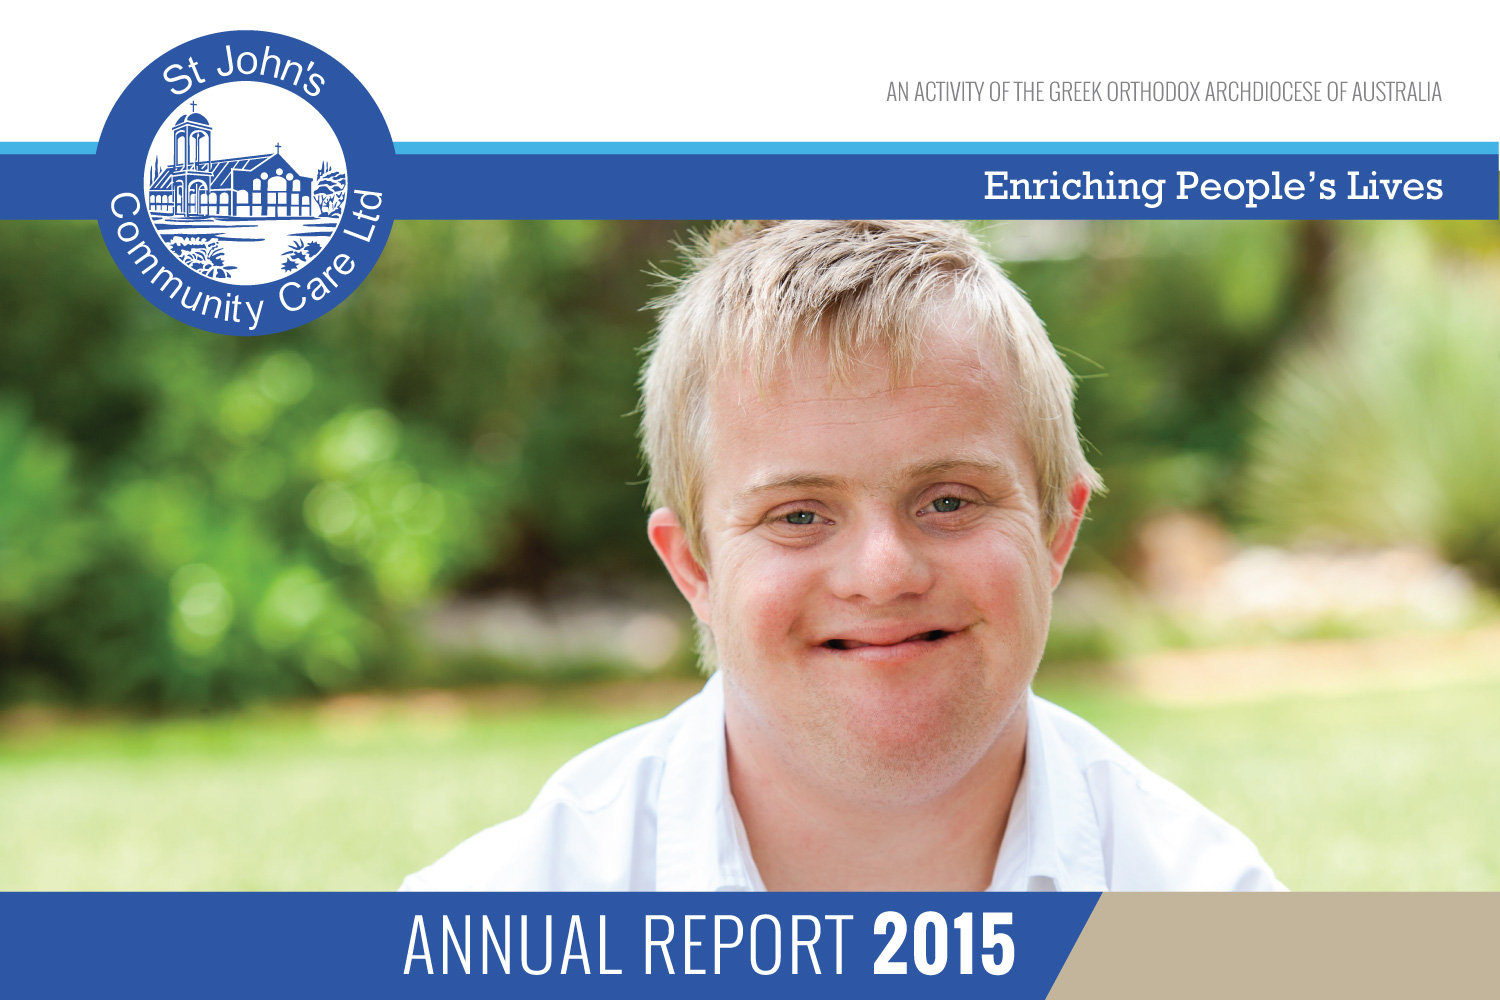 Front cover of the St John's Community Care Annual Report 2015 featuring photo of a young, blonde man with Down syndrome, in a white shirt, smiling at the camera.